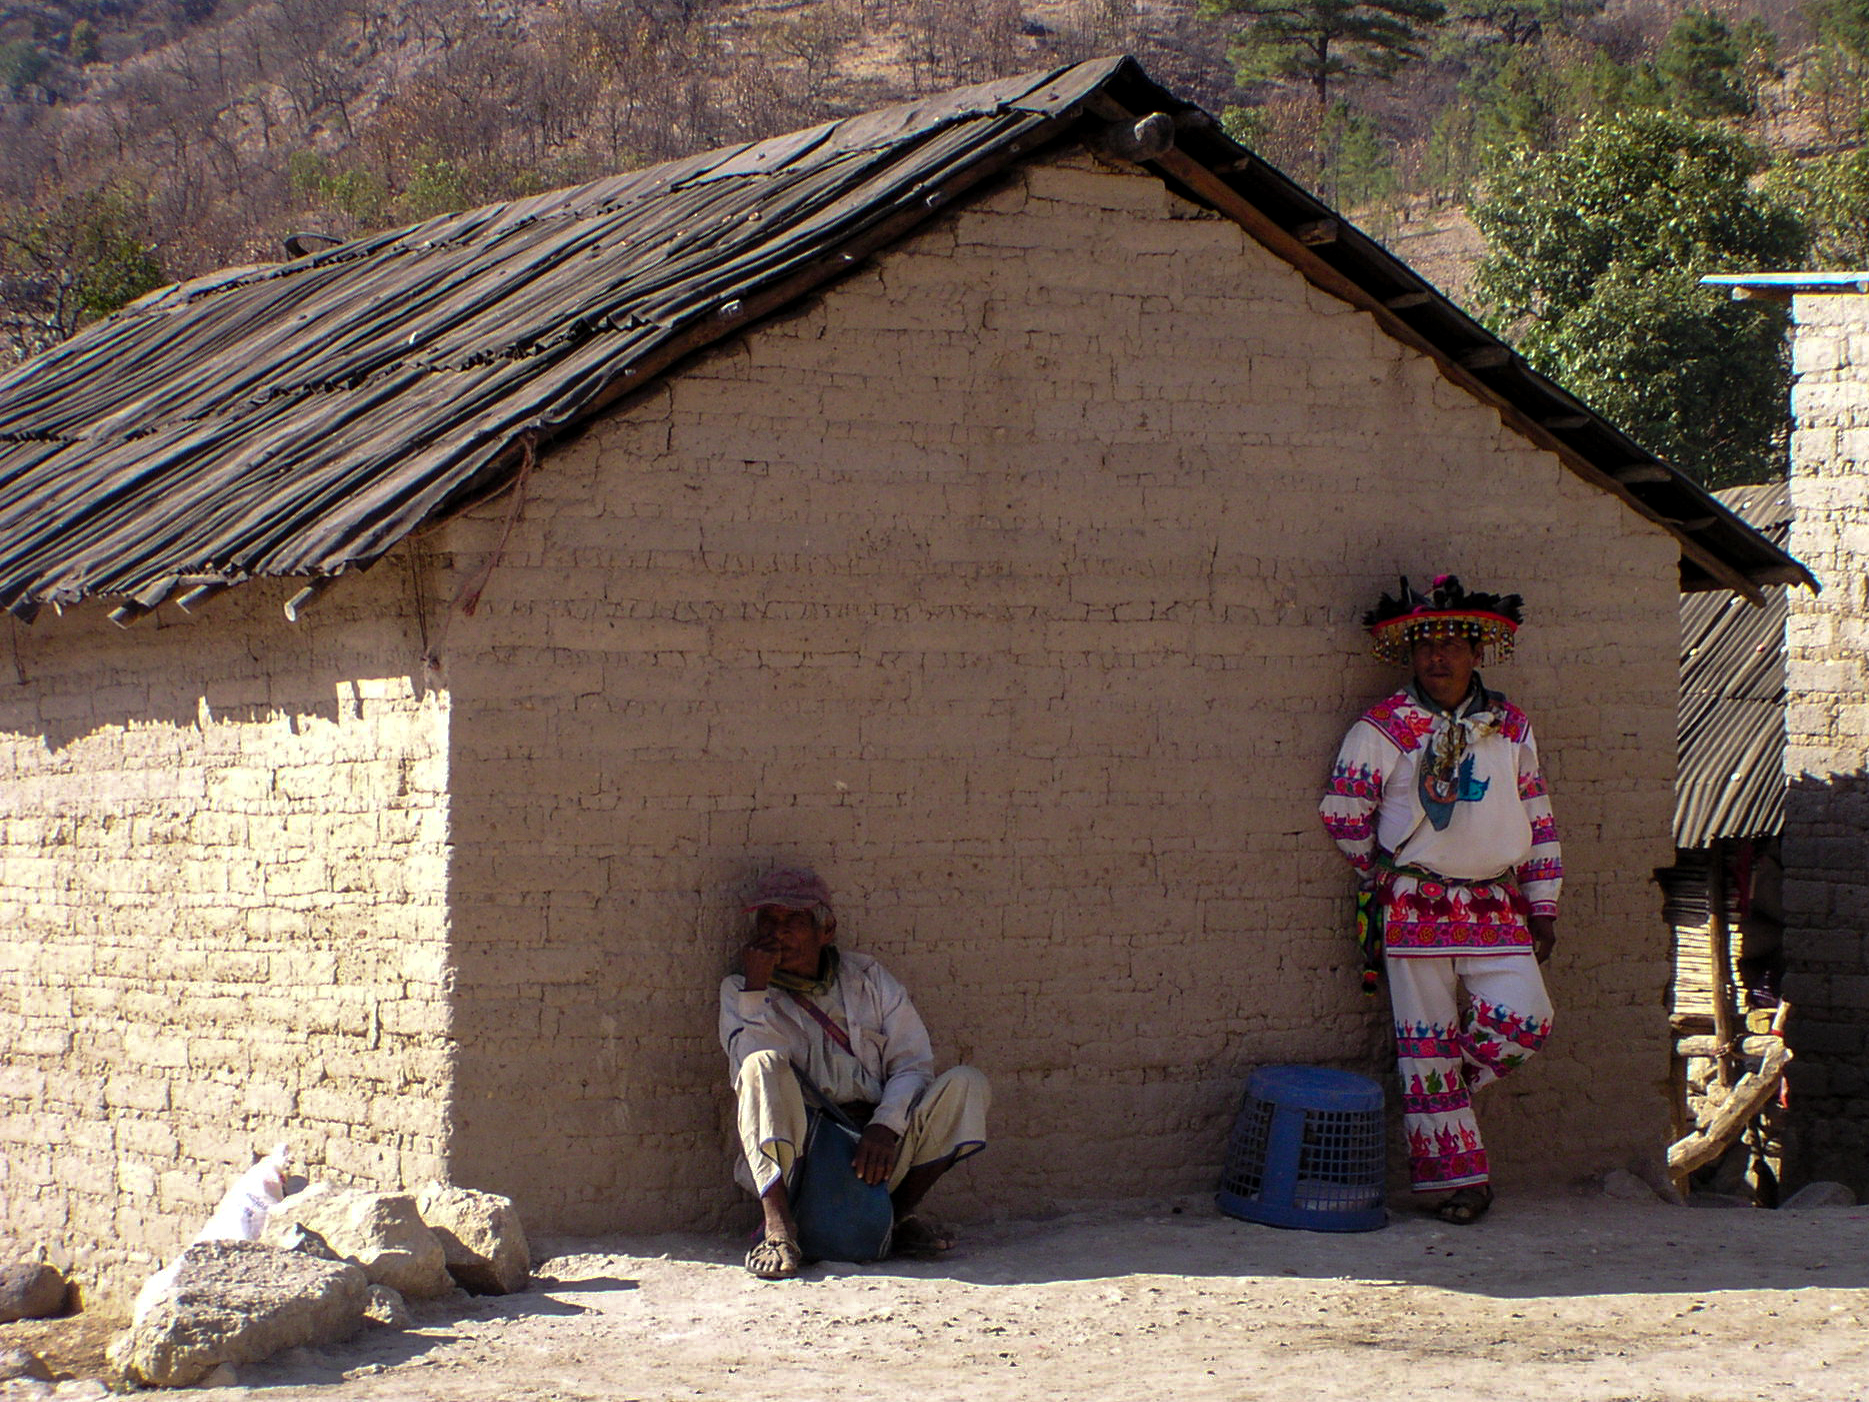 Wixarica man in traditional costumes observe us from the distance